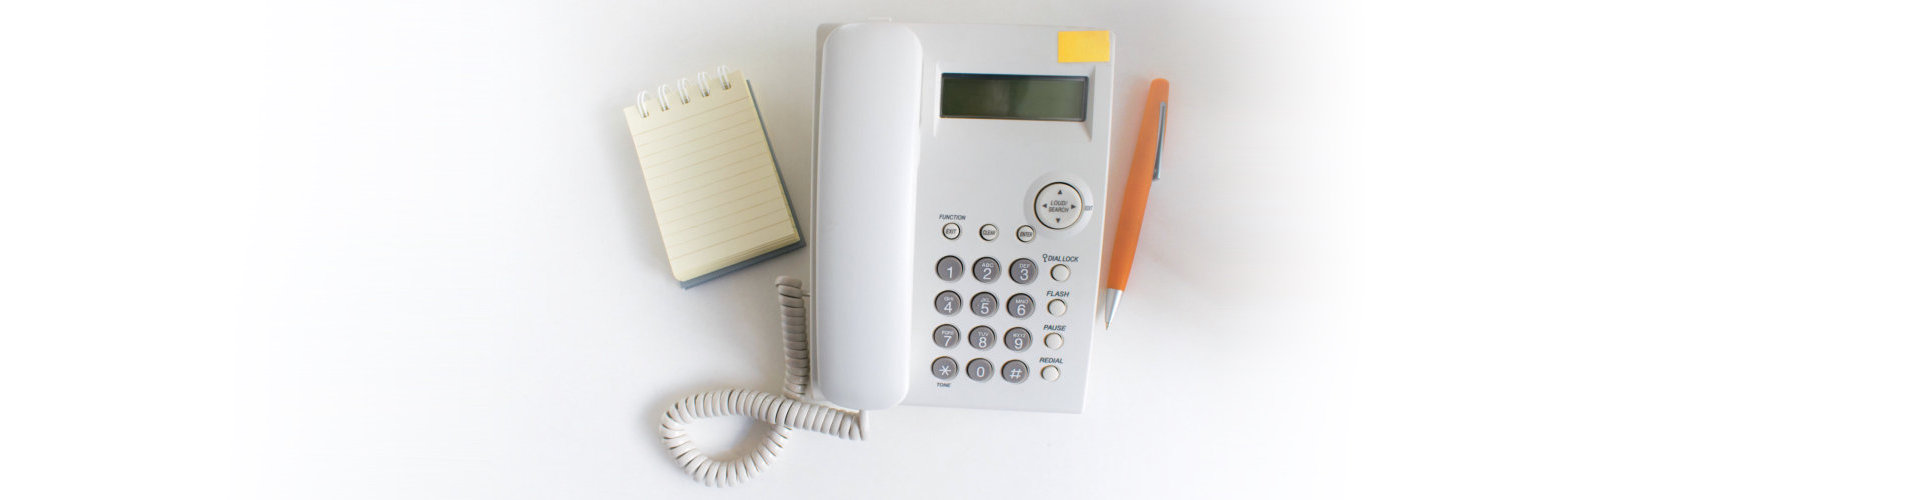 telephone, notebook and a pen